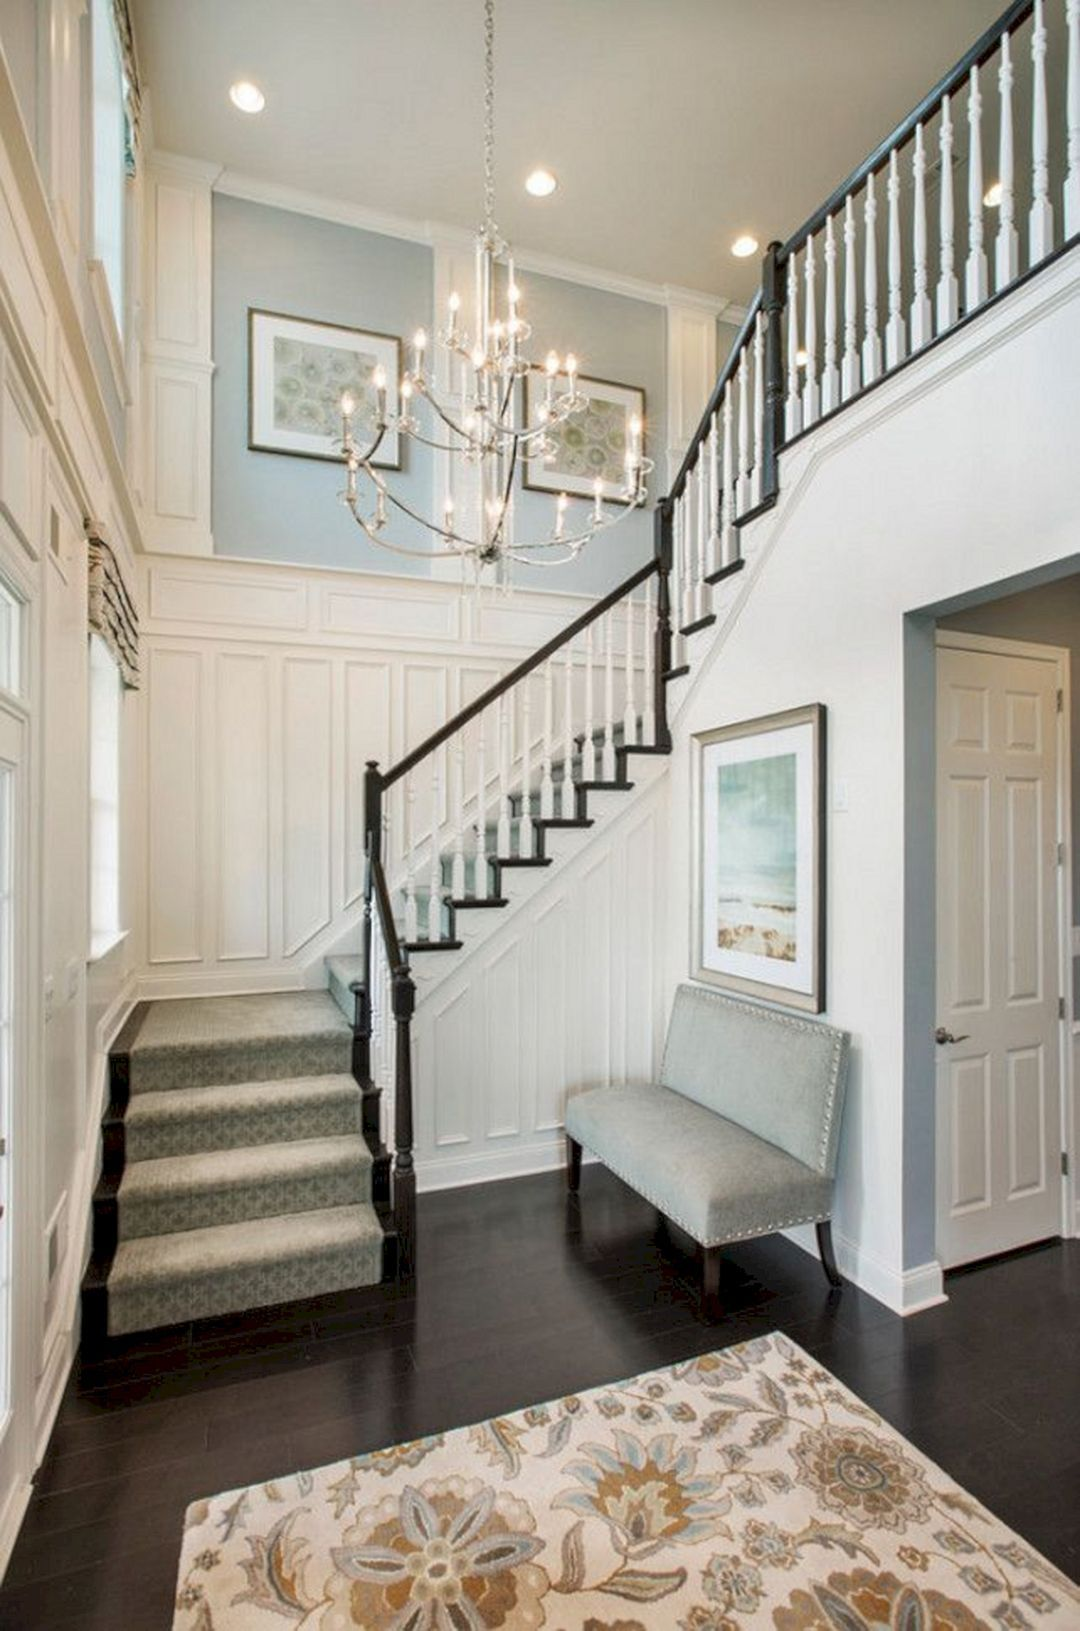 Best 65 Awesome Arranging Pictures On A Stair Wall Ideas Freshouz Com Home Foyer Paint Colors 400 x 300